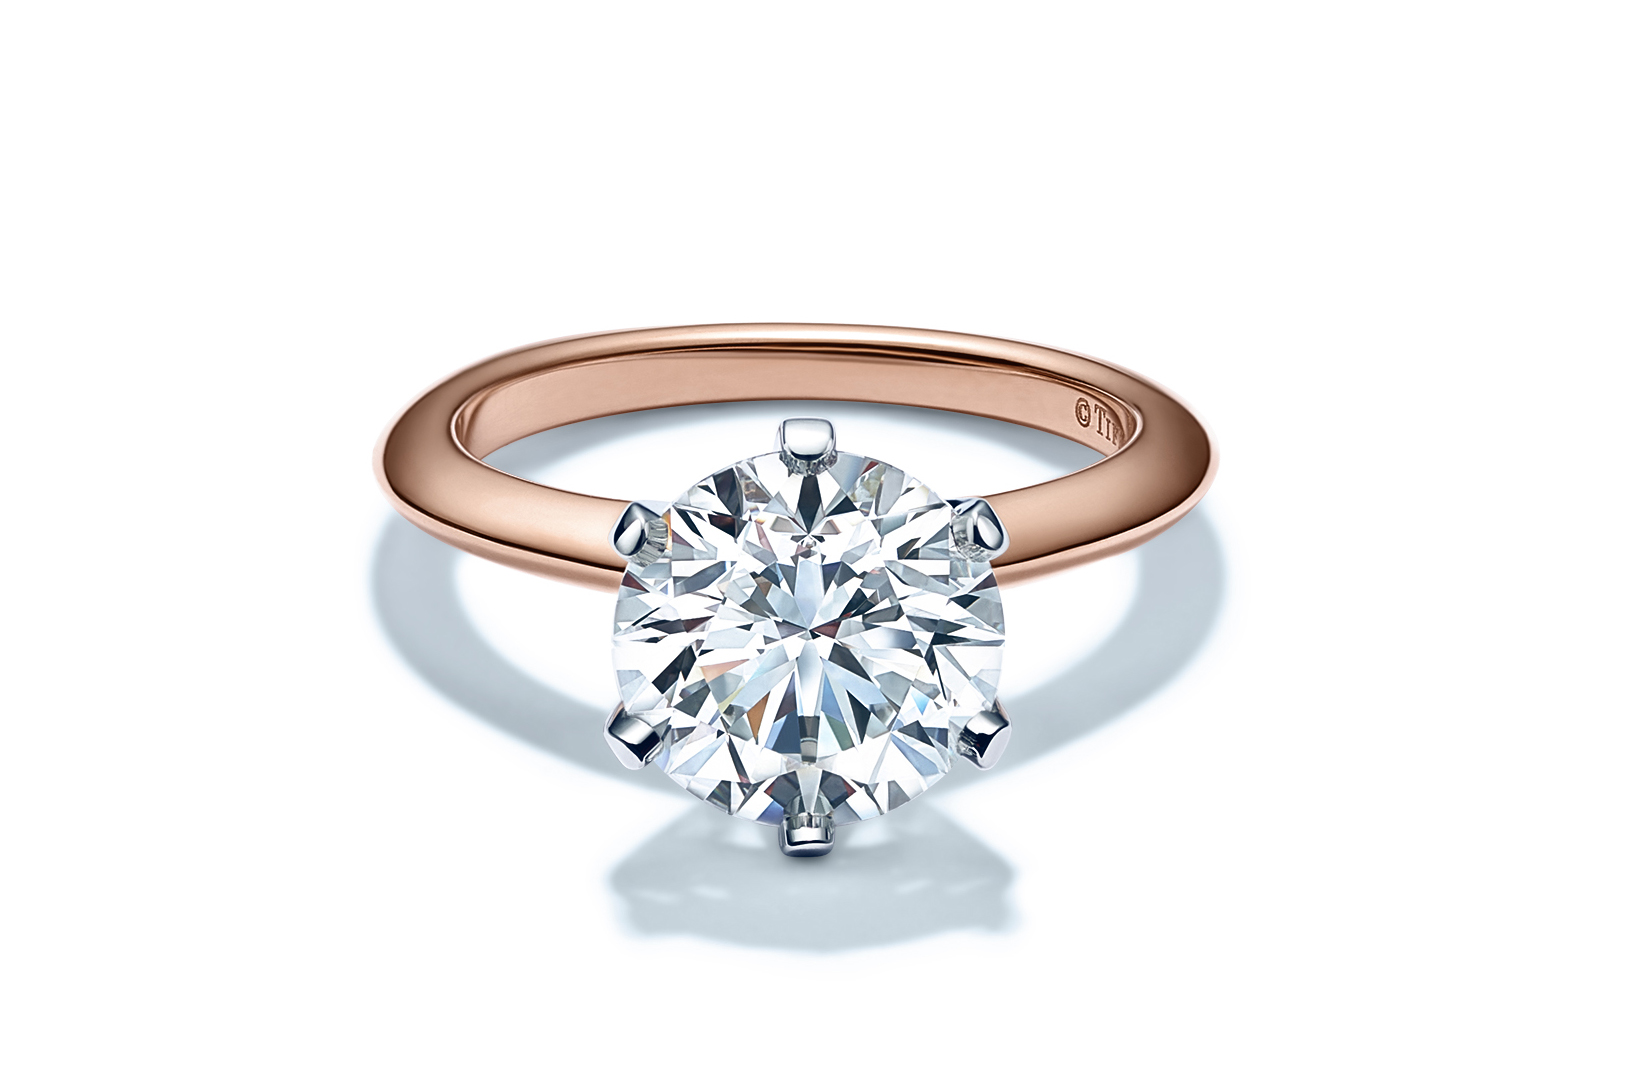 The new Tiffany Setting engagement ring in 18-karat rose gold.